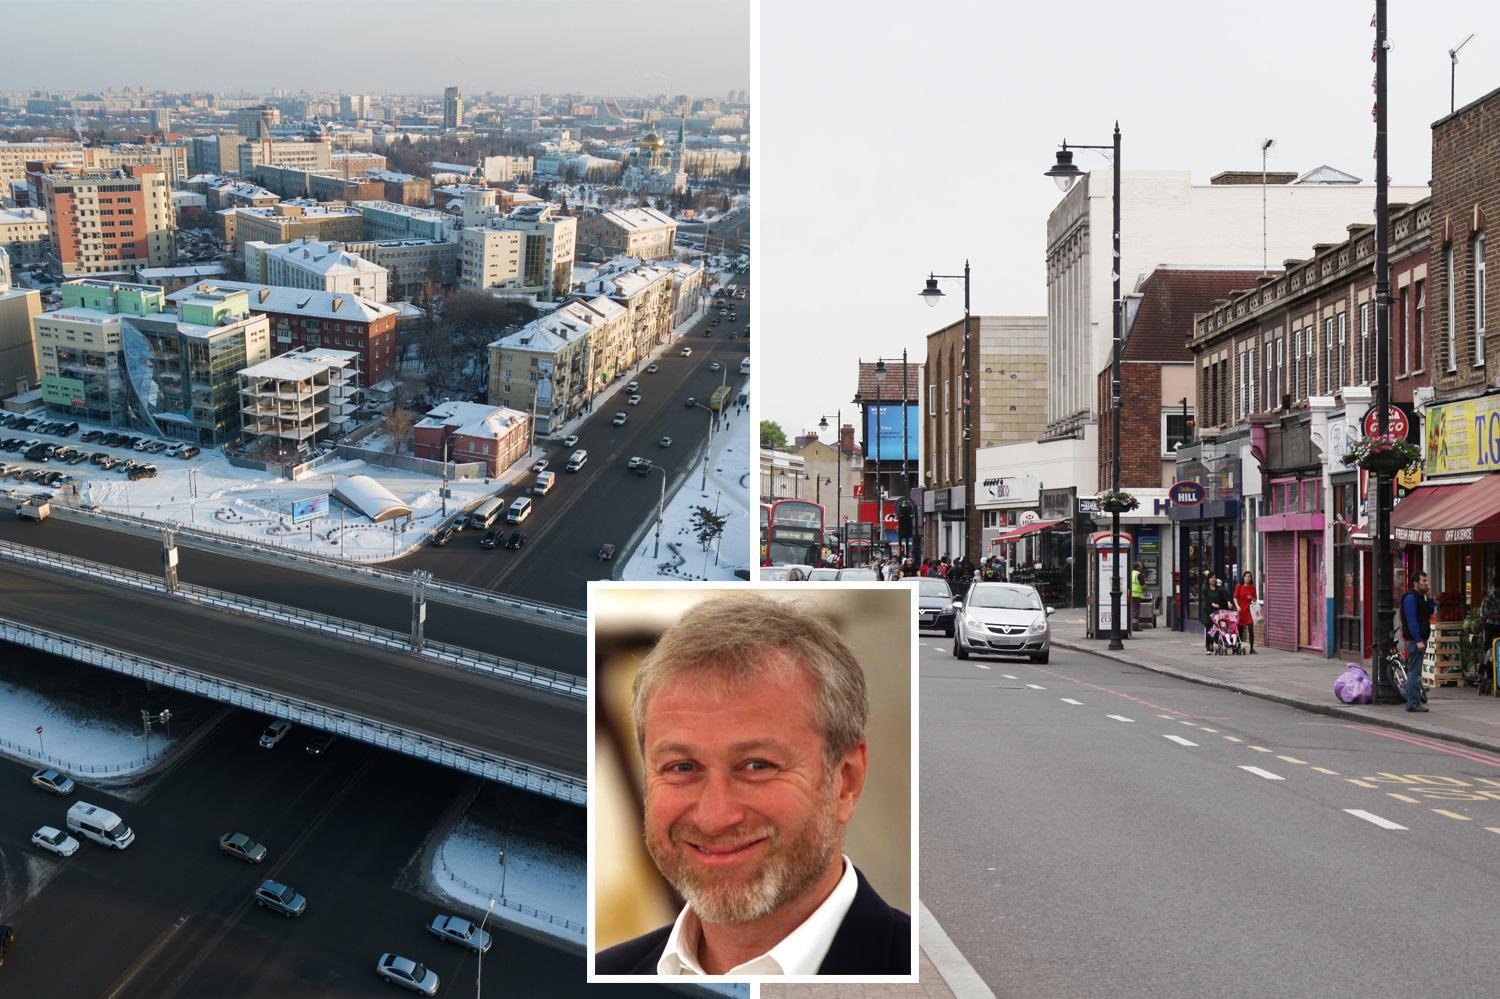 Roman Abramovich branded Tottenham 'worse than Omsk' before buying Chelsea instead